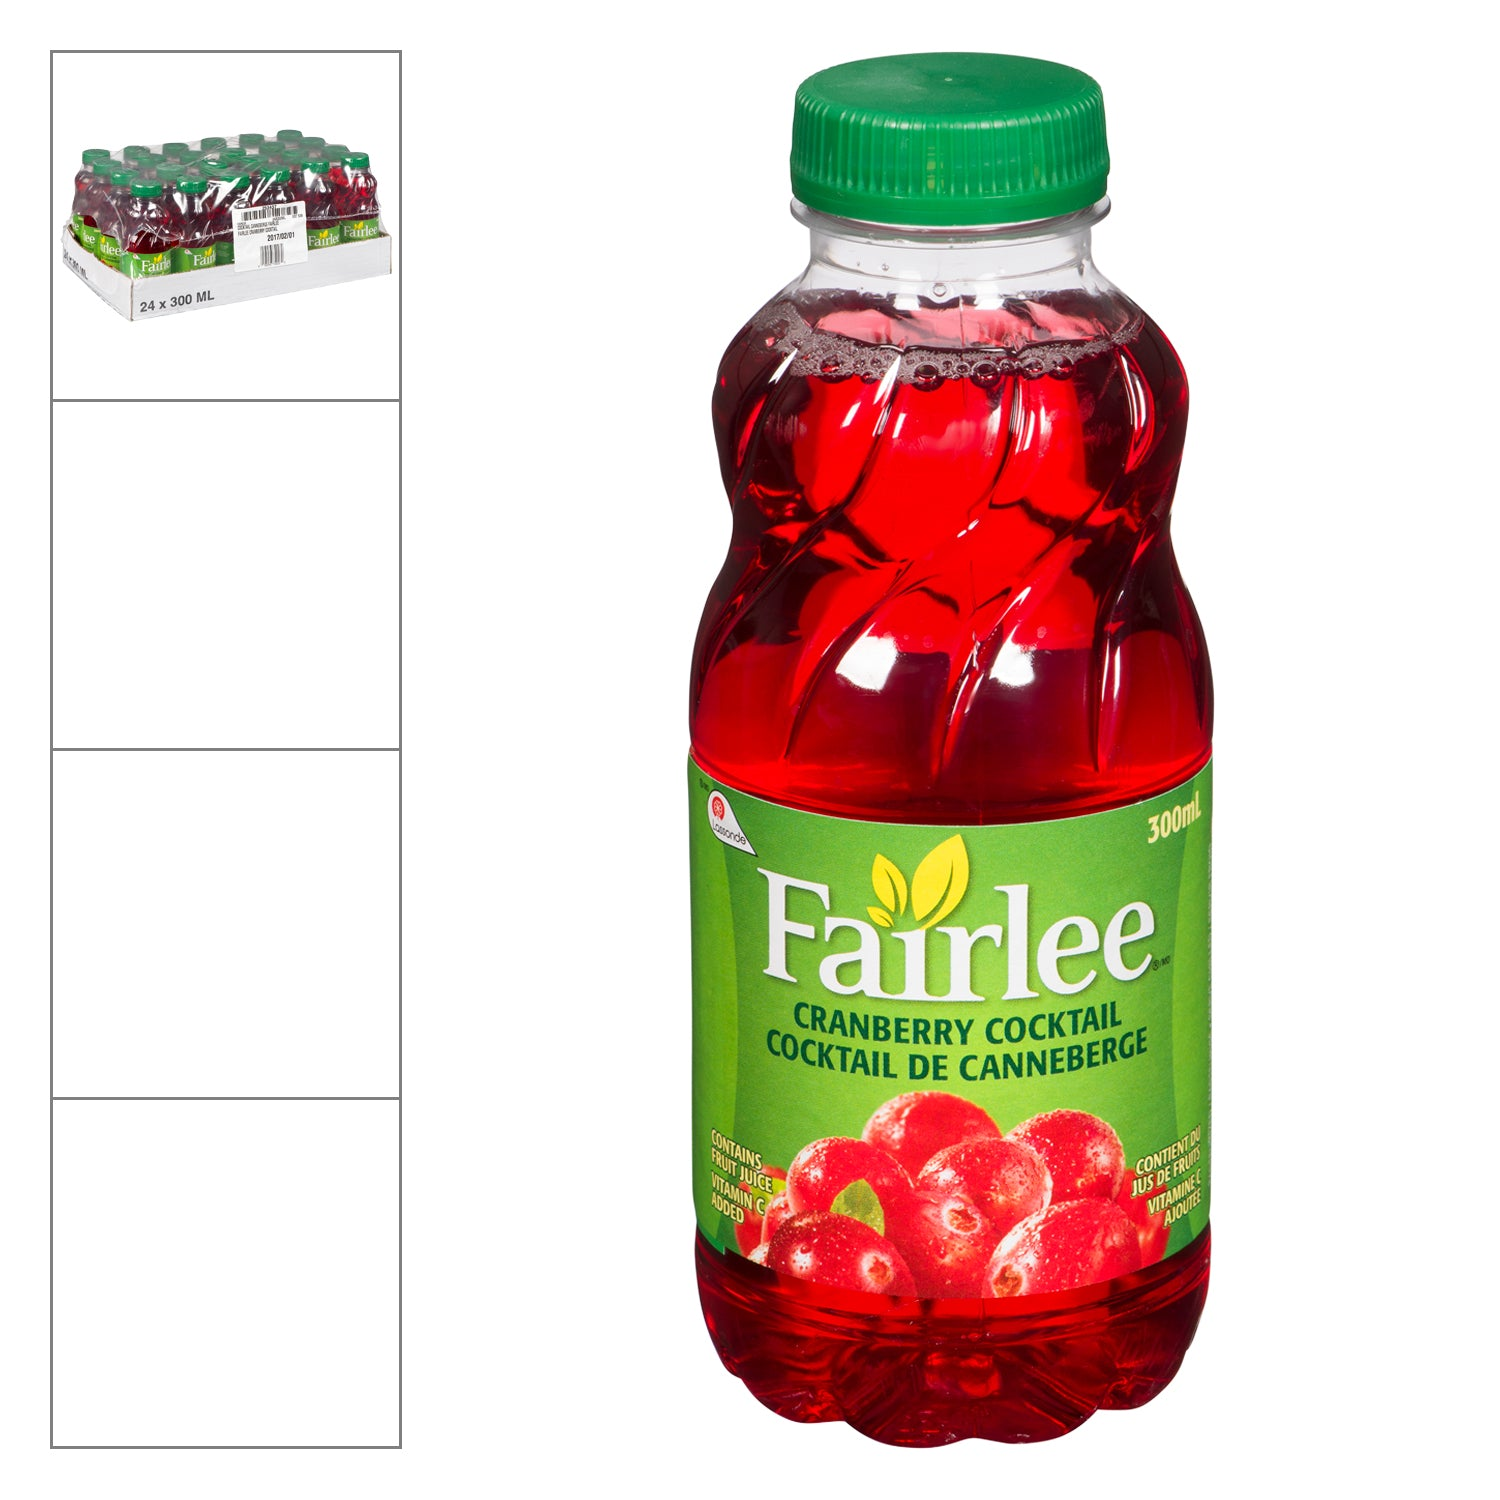 Fairlee Cranberry Cocktail Juice 300 ml - 24 Pack [$0.75/each]